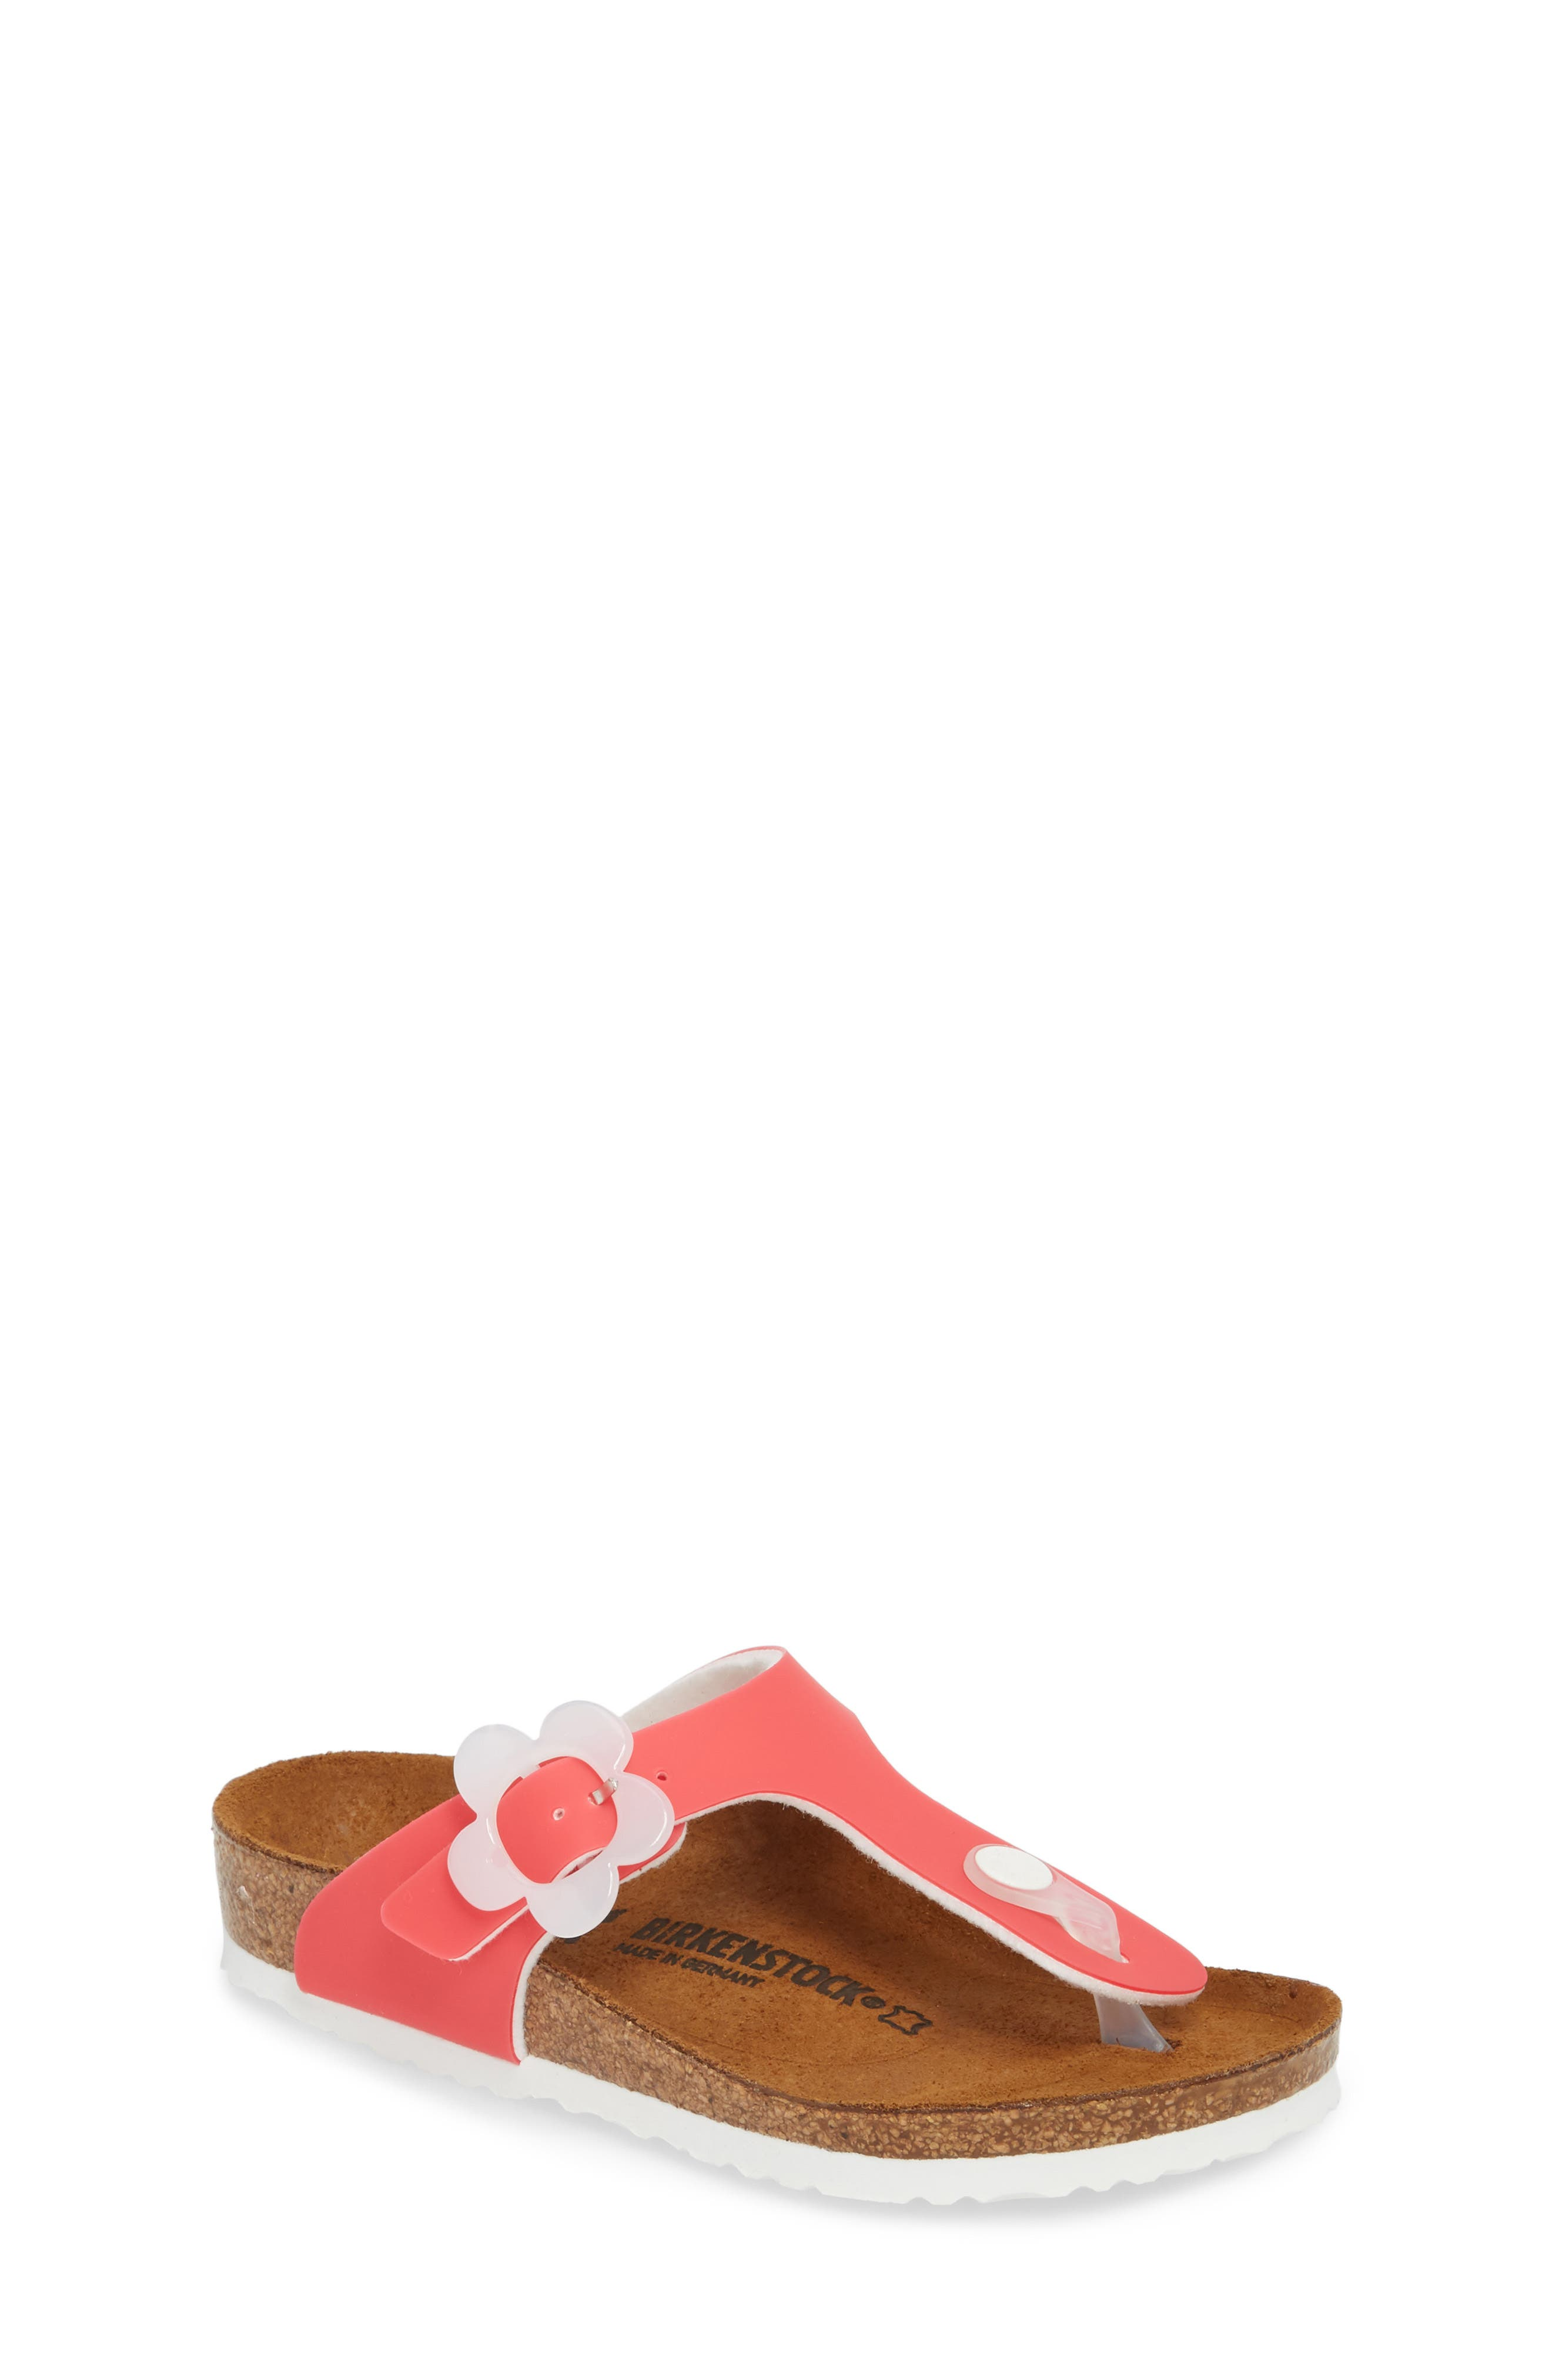 Gizeh Flowered Thong Sandal,                         Main,                         color, 650